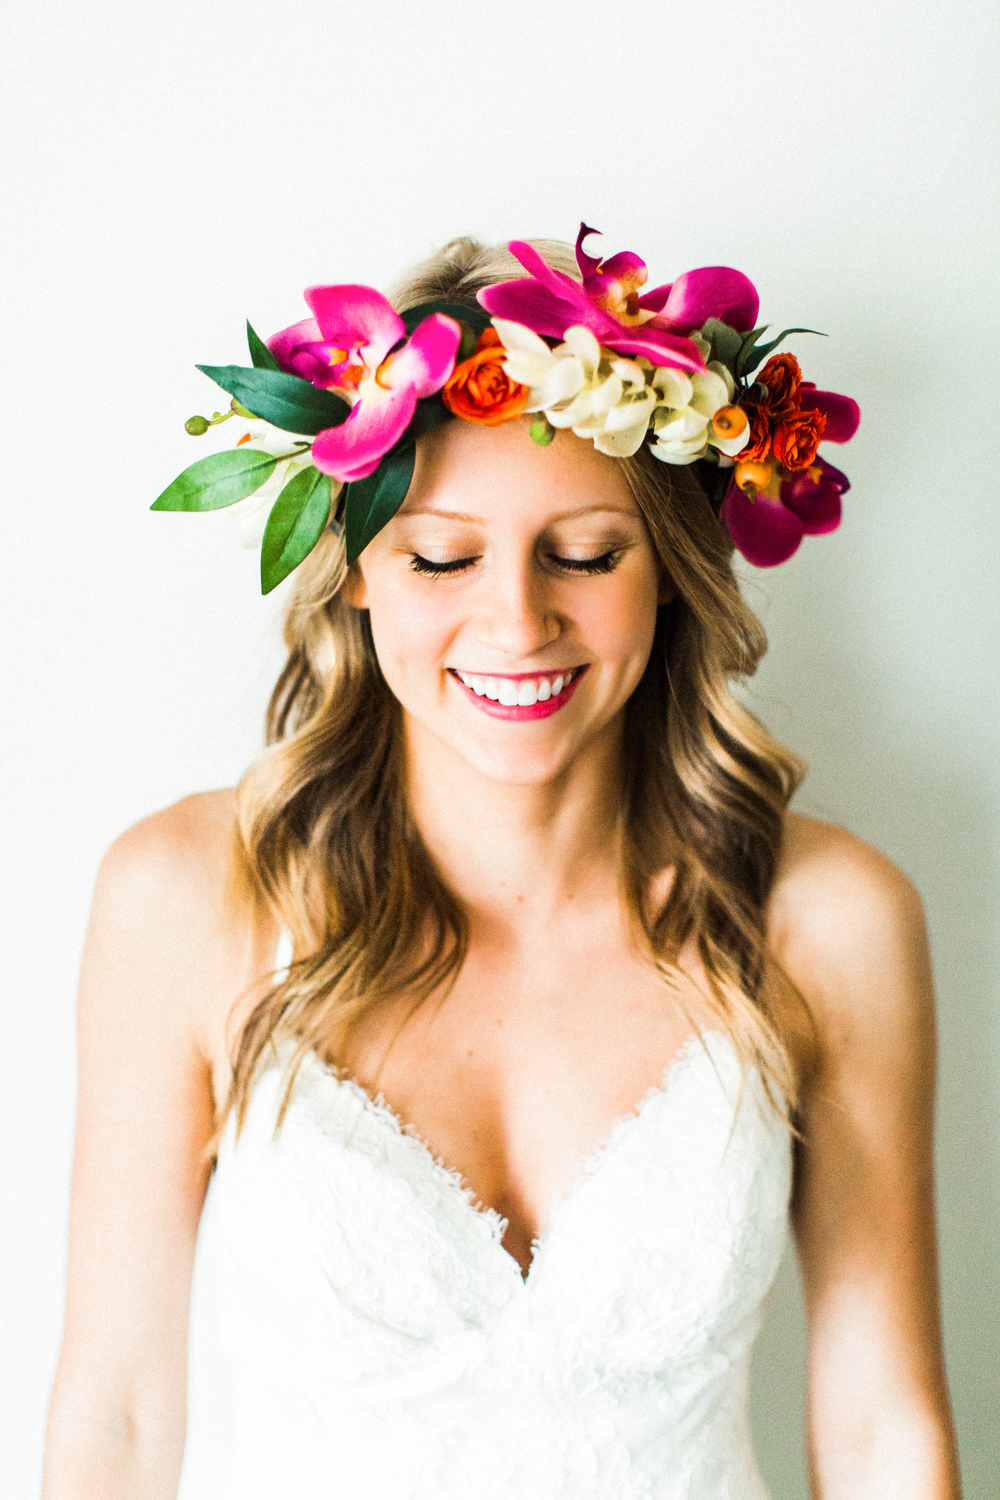 Add flower crown to photo images flower wallpaper hd add flower crown to photo flowers gallery add flower crown to photo image izmirmasajfo images izmirmasajfo Gallery